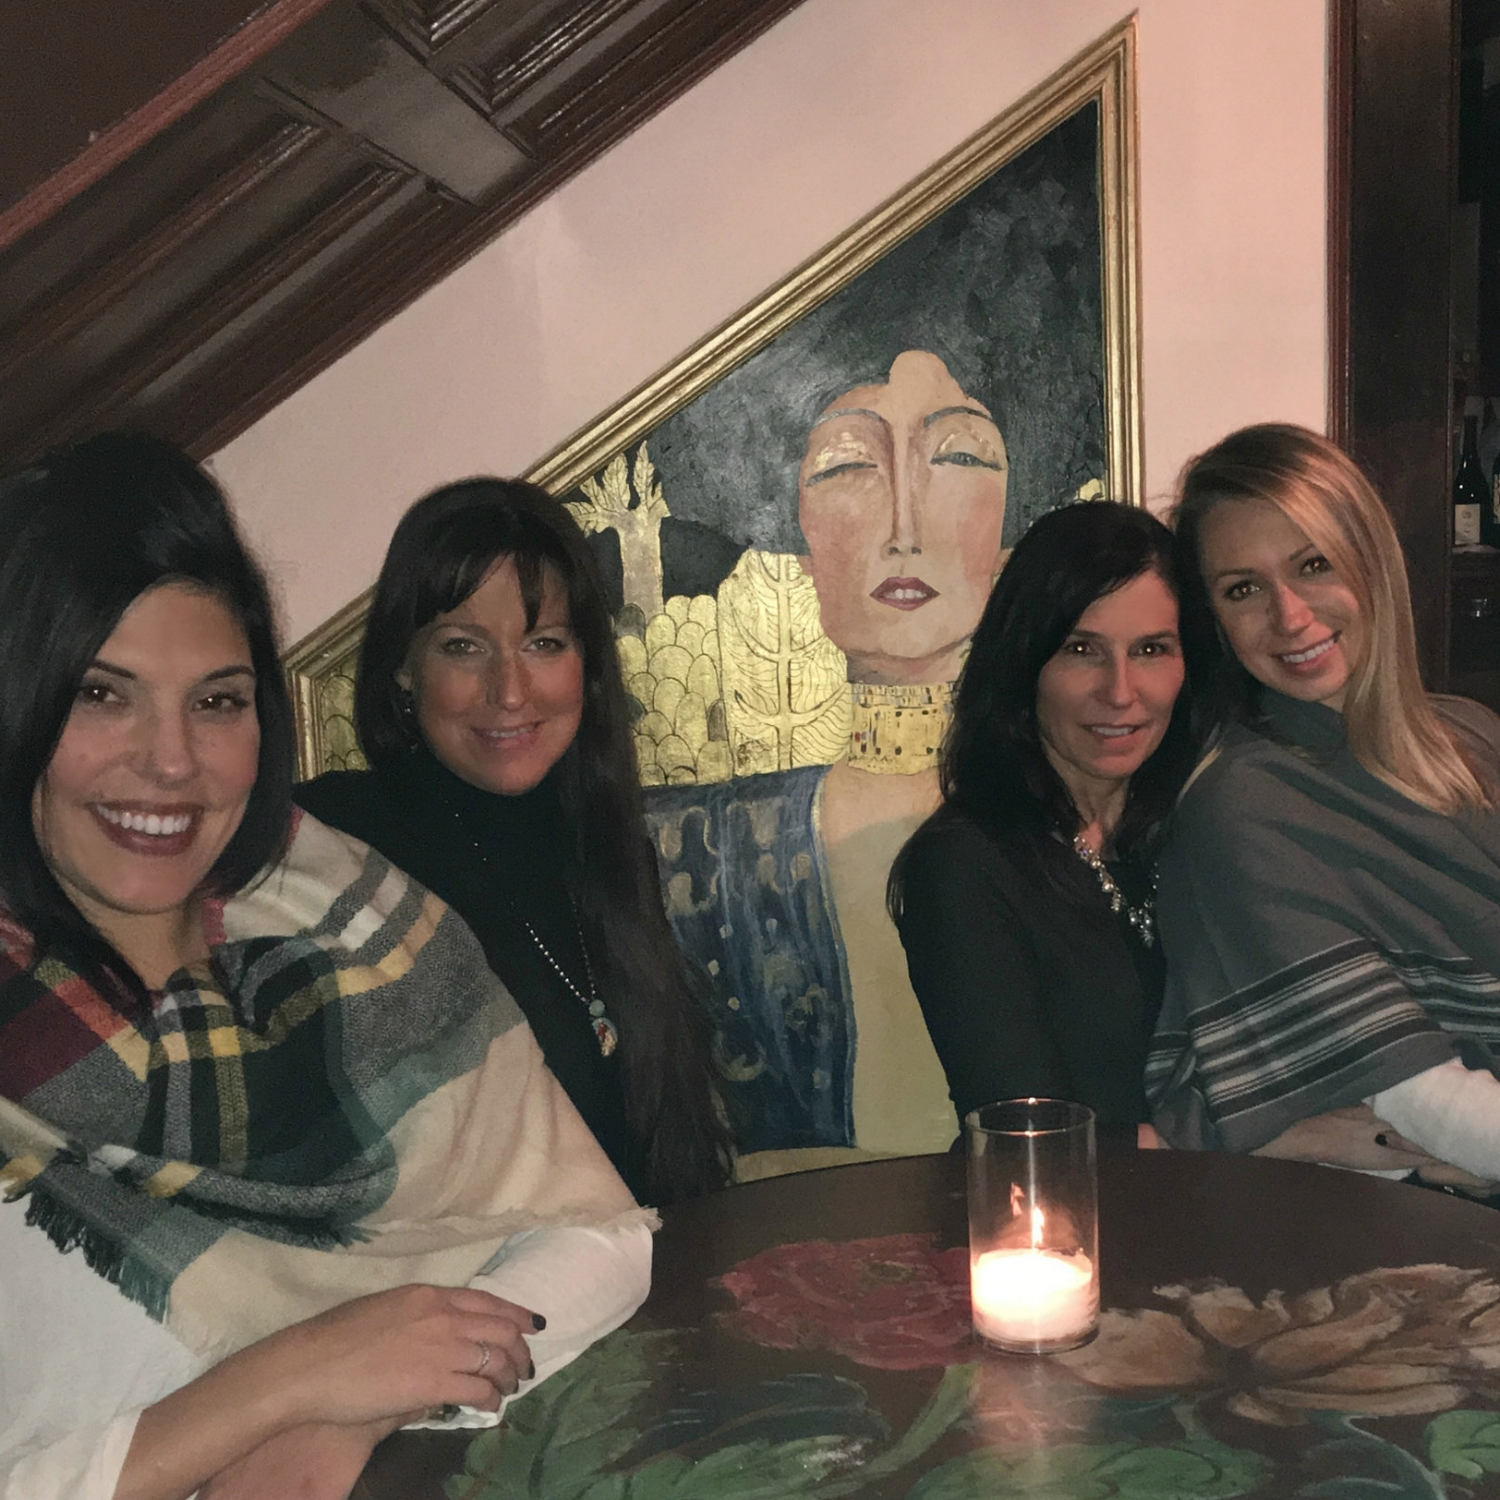 Denise suggested dinner at  Mouzon House . Katie, Denise, me, and the bride-to-be enjoyed dinner, wine, talk, and pics in this quaint house filled with artwork.